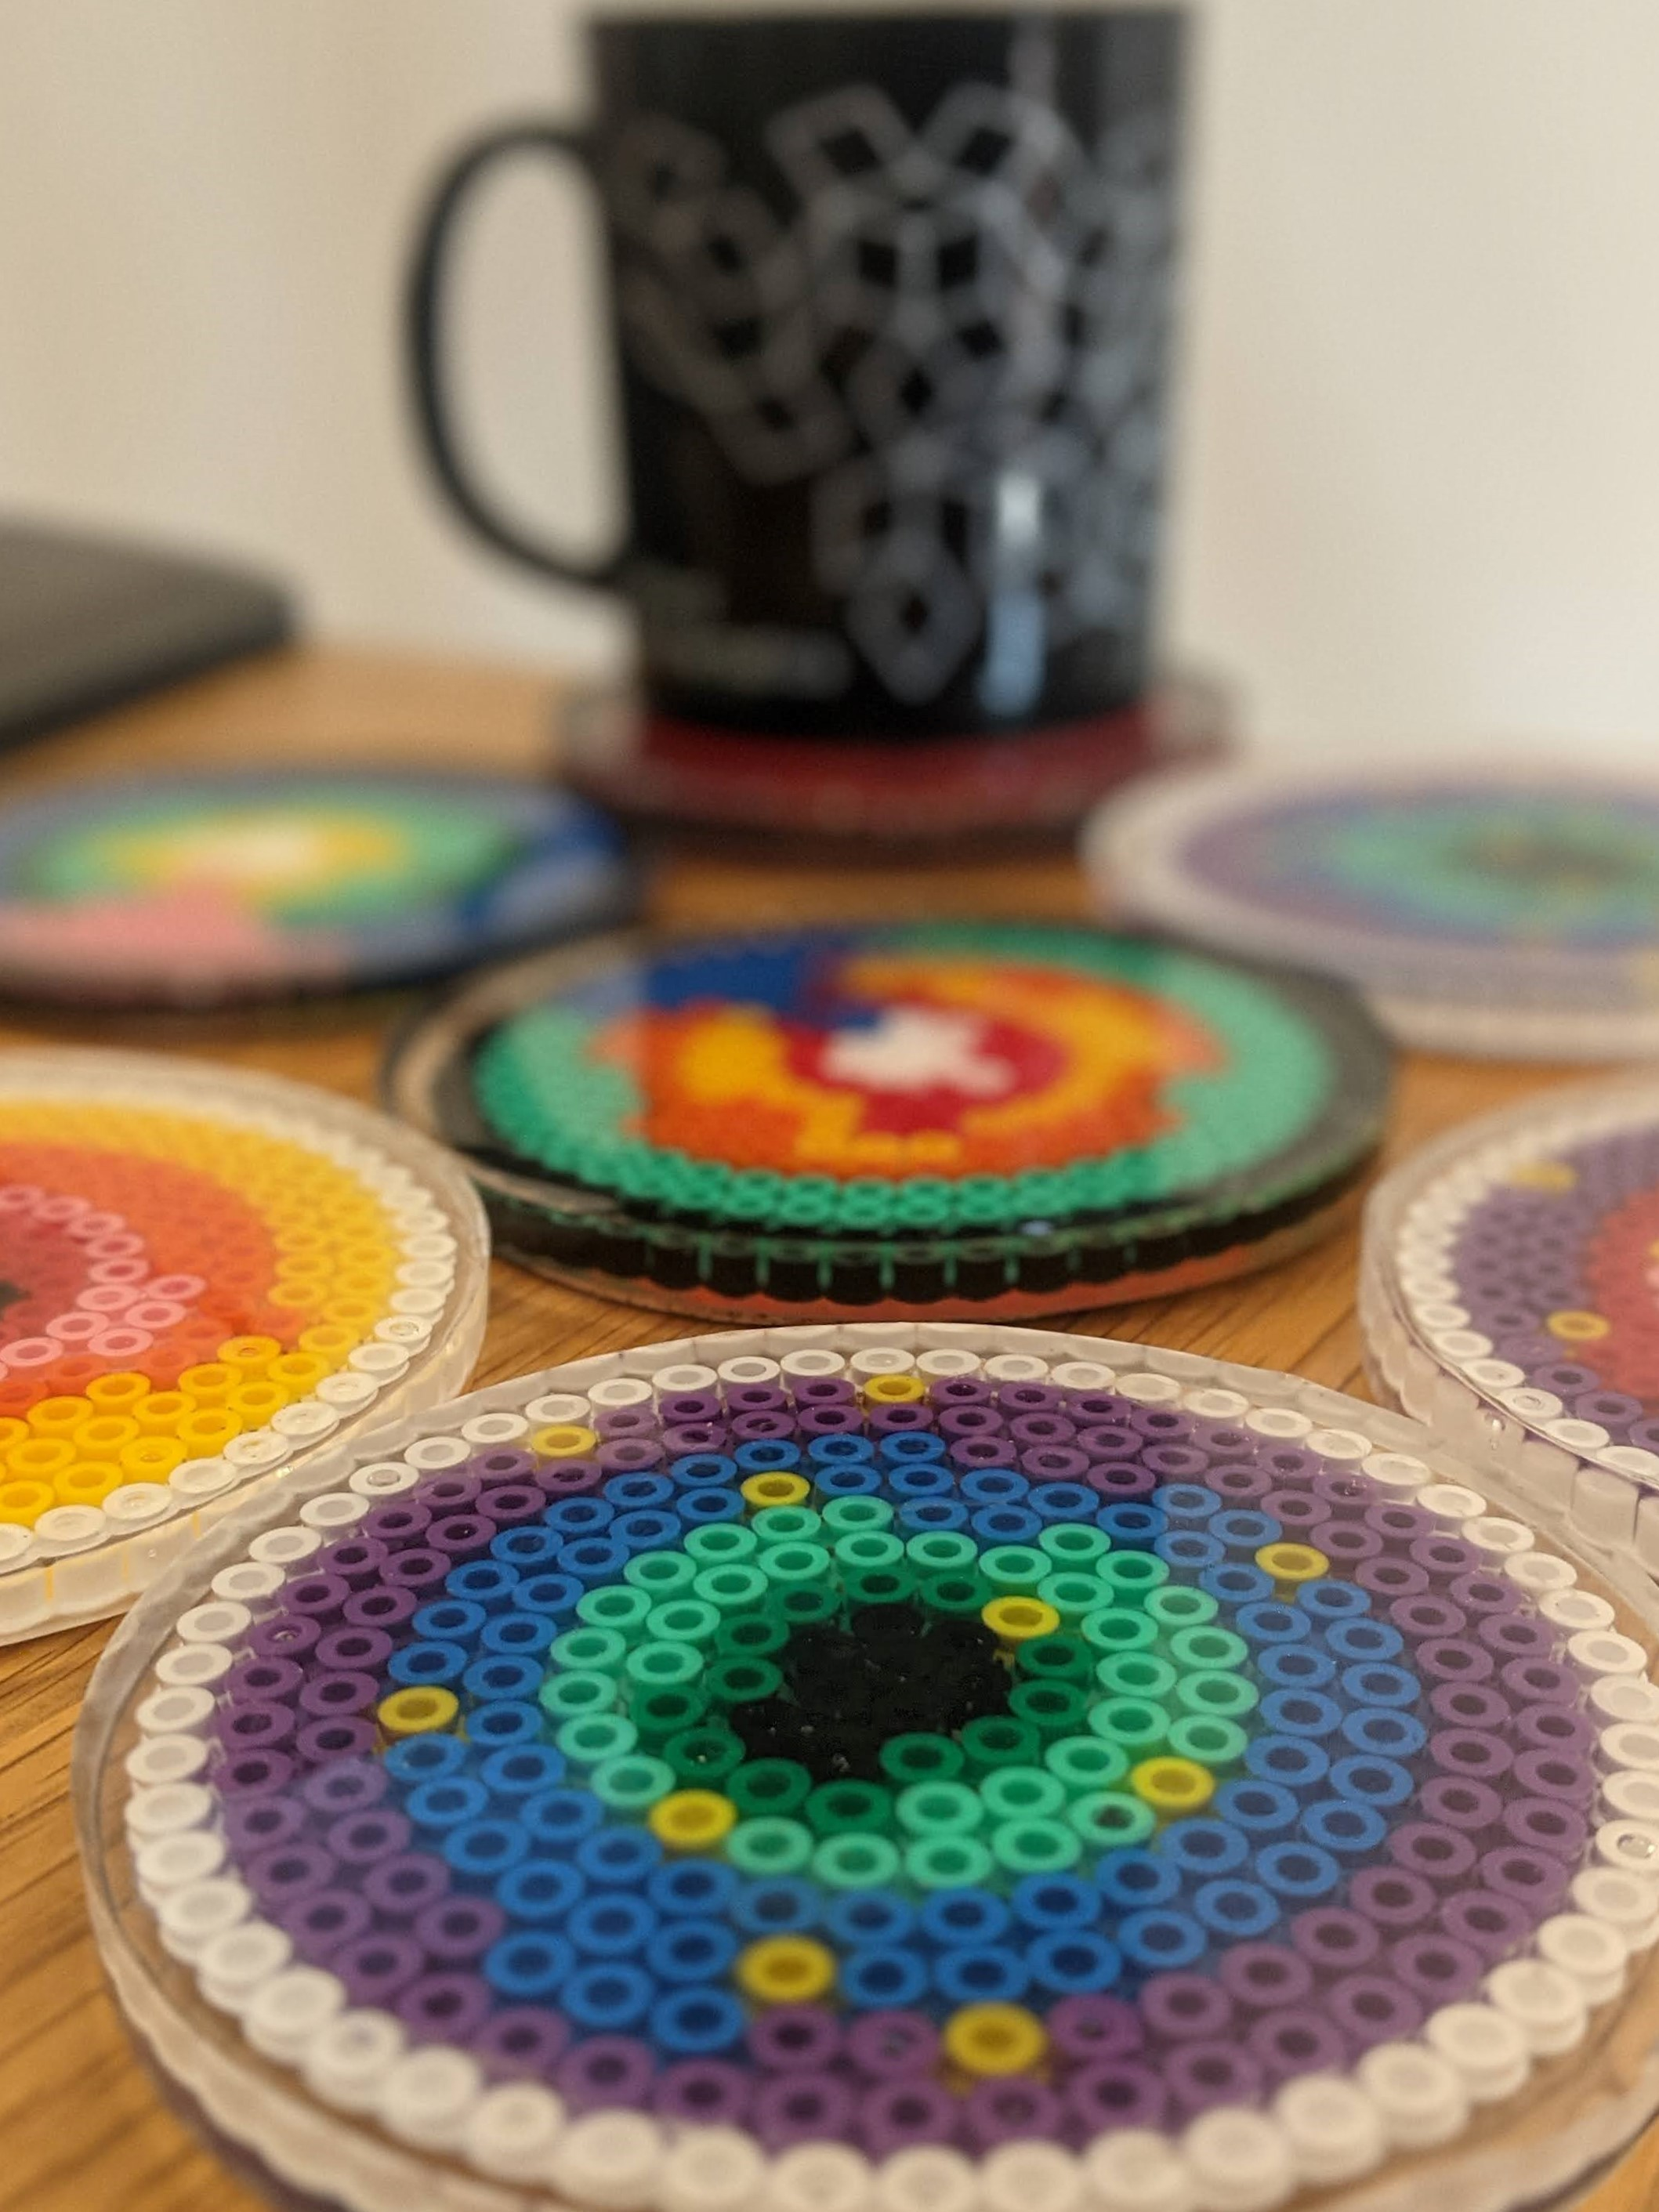 Coasters made from plastic beads in resin, showing show an agent-based model of microbeads infiltrating a tumour spheroid.